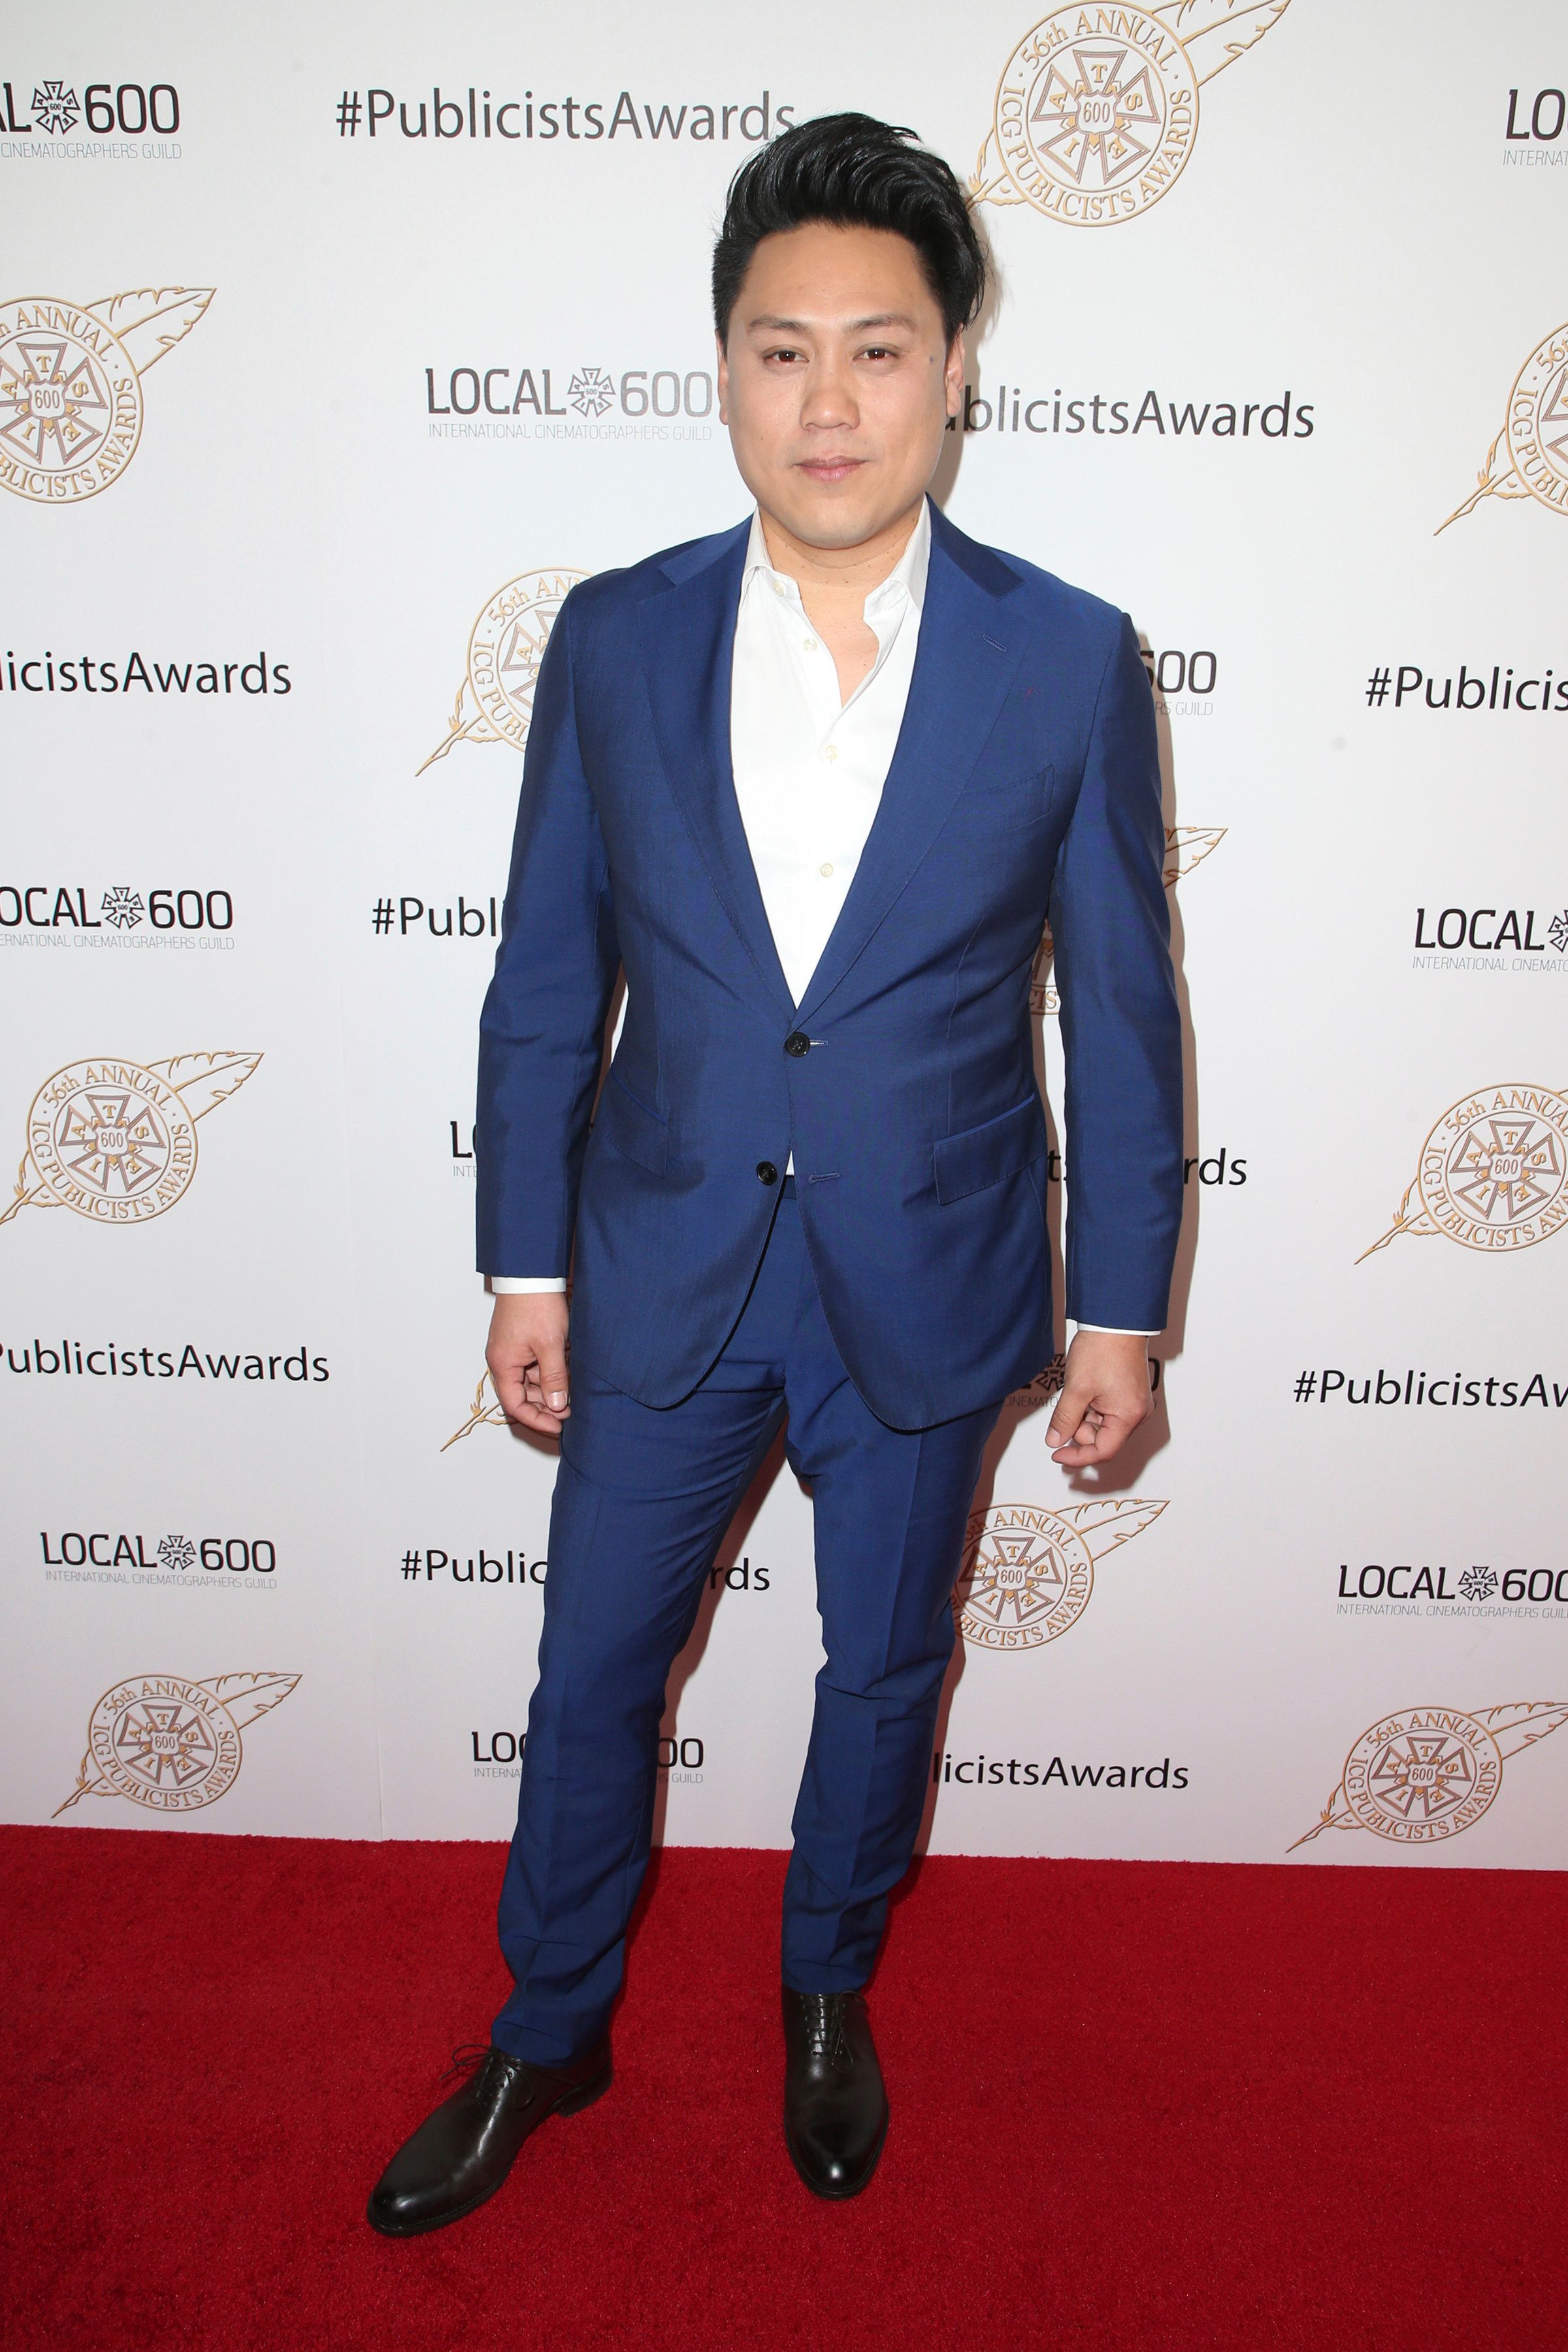 BEVERLY HILLS, CA - FEBRUARY 22: Jon M. Chu at the 56th Annual International Cinematographers Guild at the Beverly Hilton Hotel in Beverly Hills, California on February 22, 2019. Credit: Faye Sadou/MediaPunch /IPX